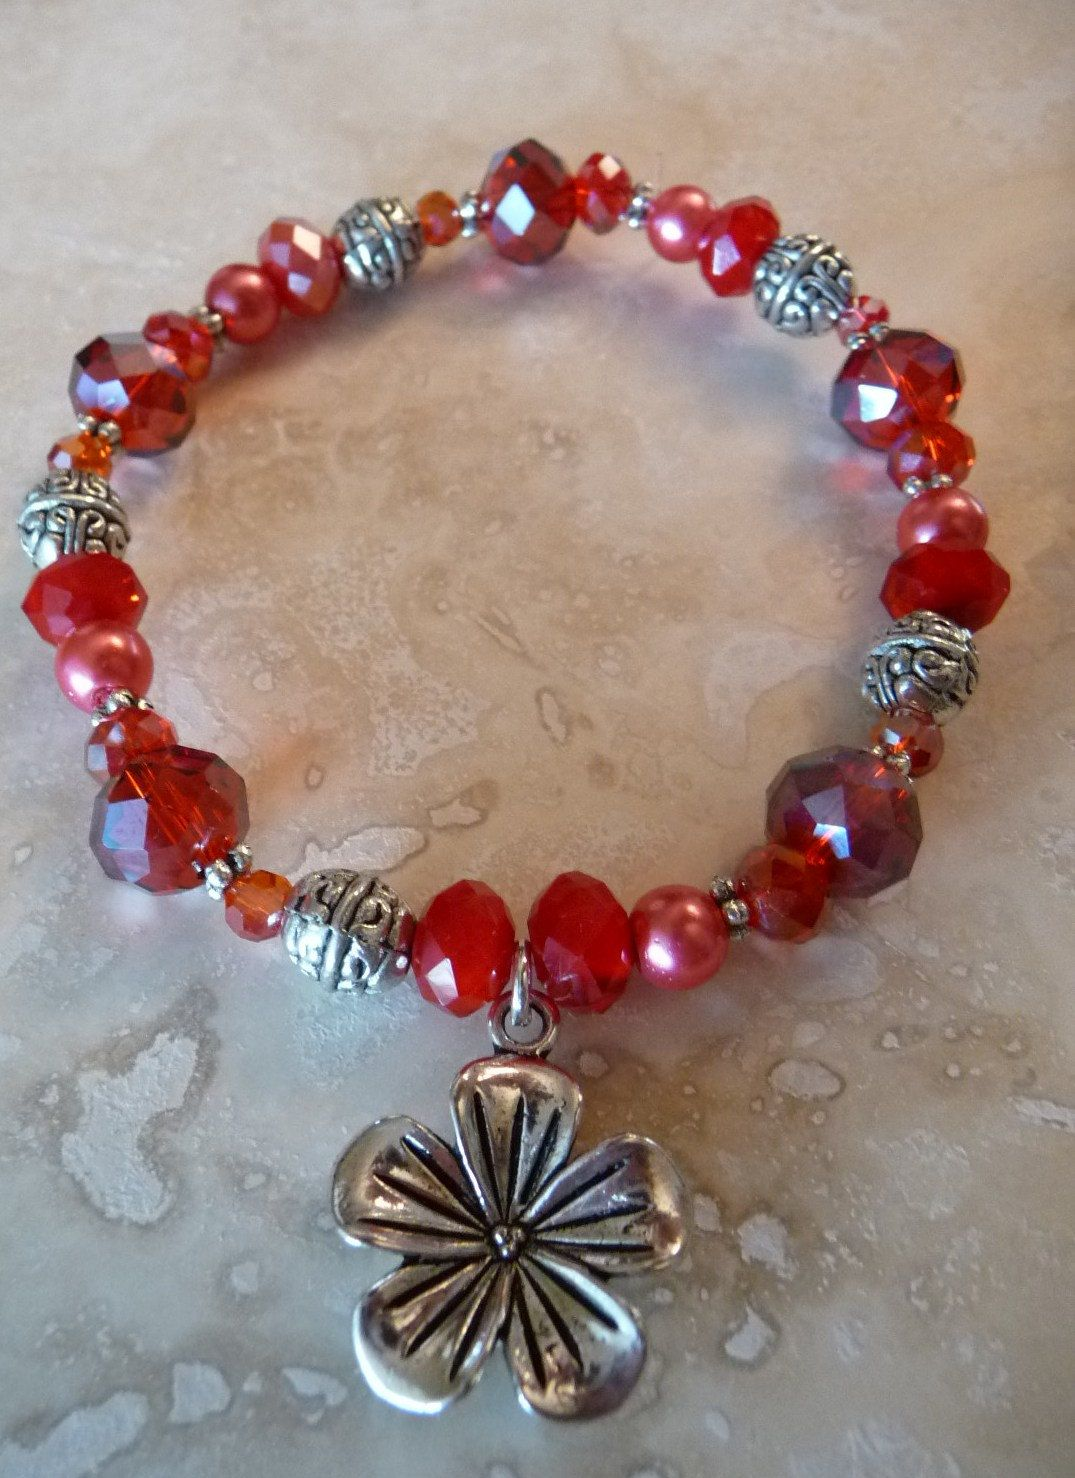 Red Crystal Stretch Bead Bracelet. $8.00, via Etsy.